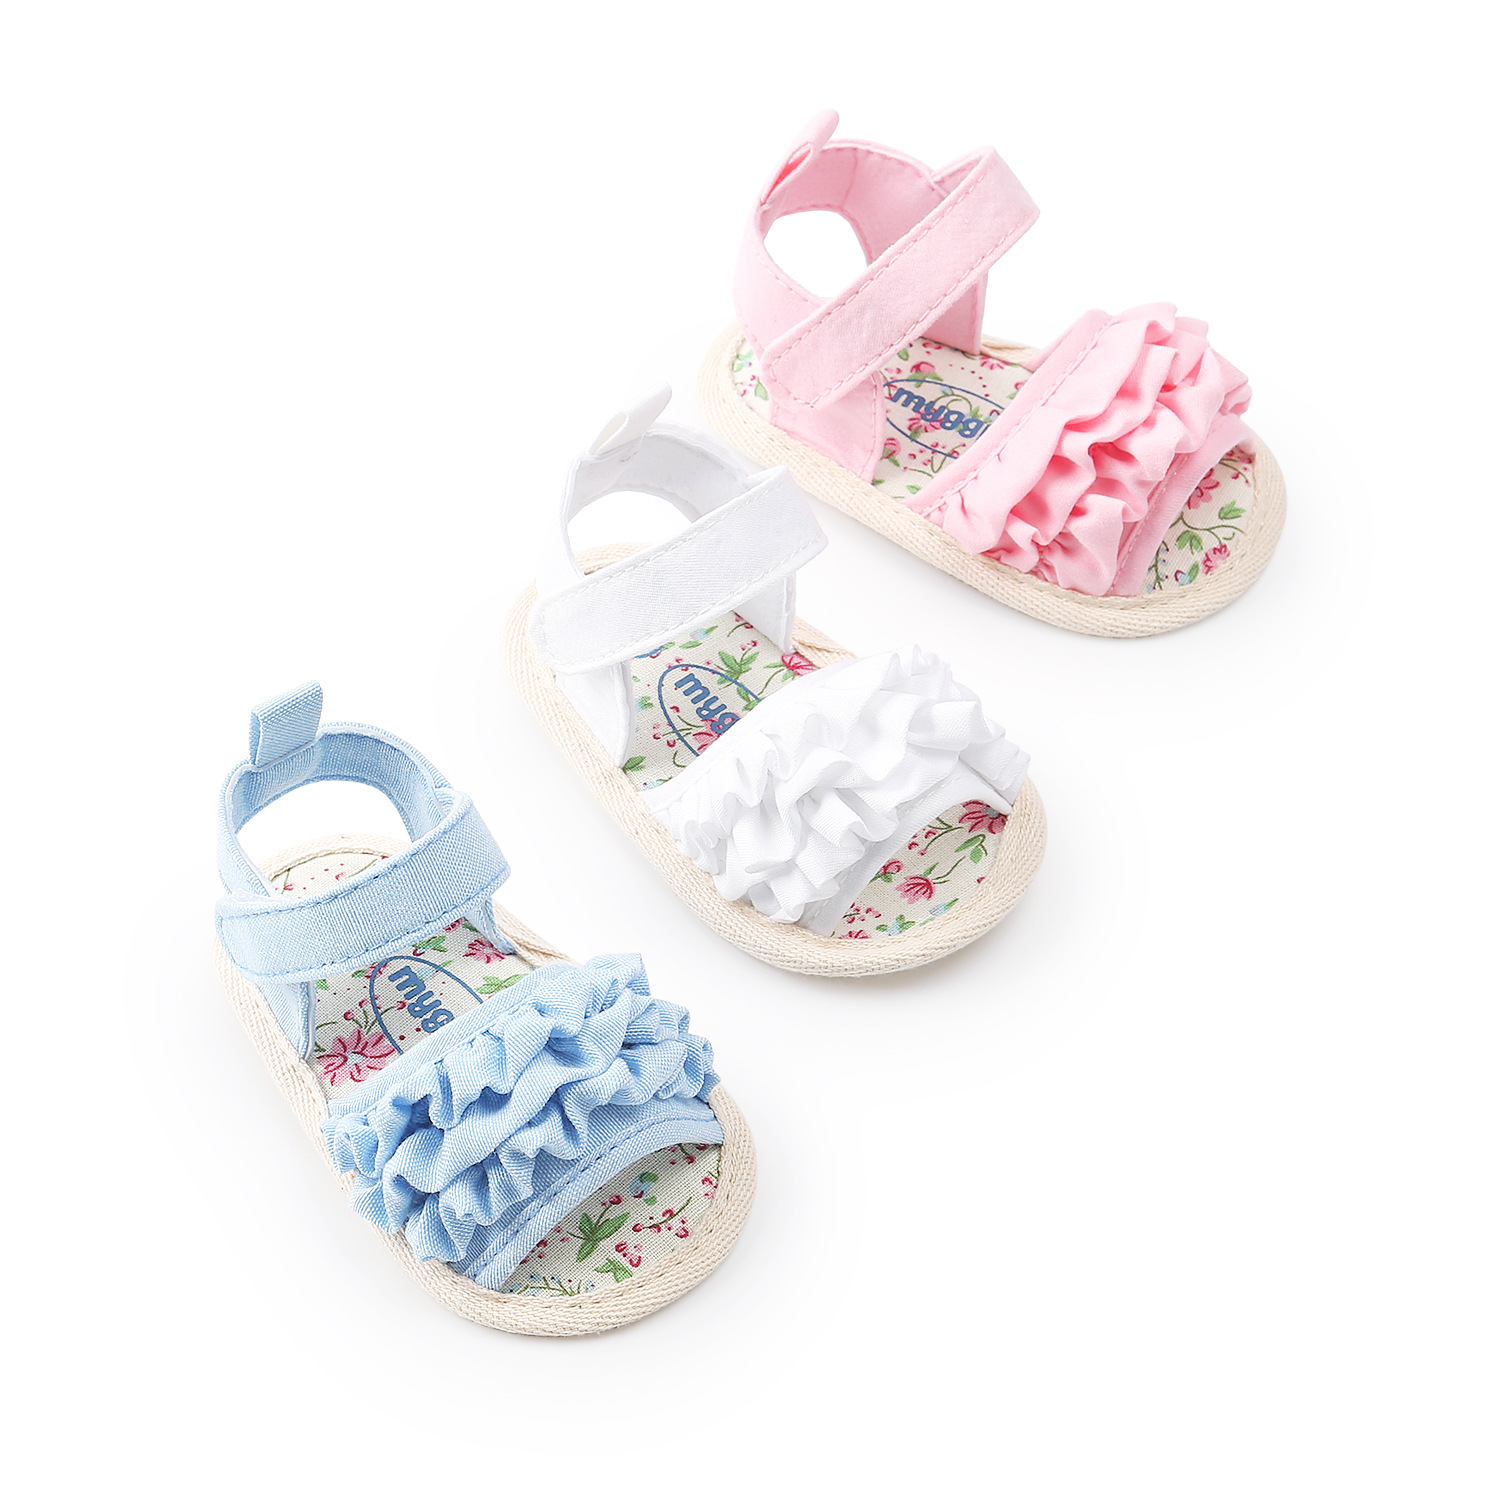 Princess Cute Newborn Baby Girls Shoe Flower Sandals Summer Casual Soft Crib Shoes Headbands First Walker Zapatos Bebe